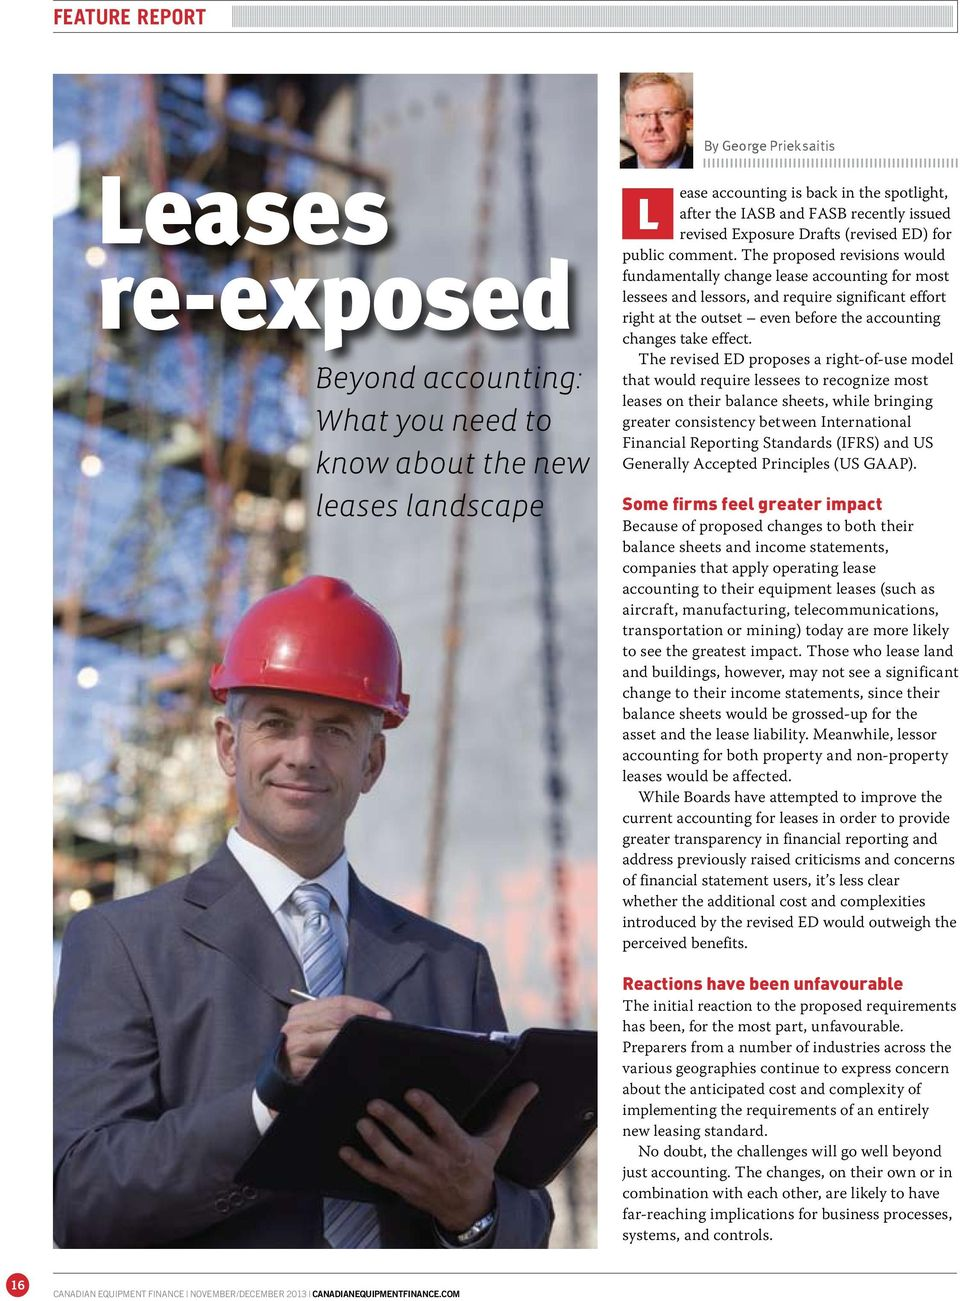 The proposed revisions would fundamentally change lease accounting for most lessees and lessors, and require significant effort right at the outset even before the accounting changes take effect.